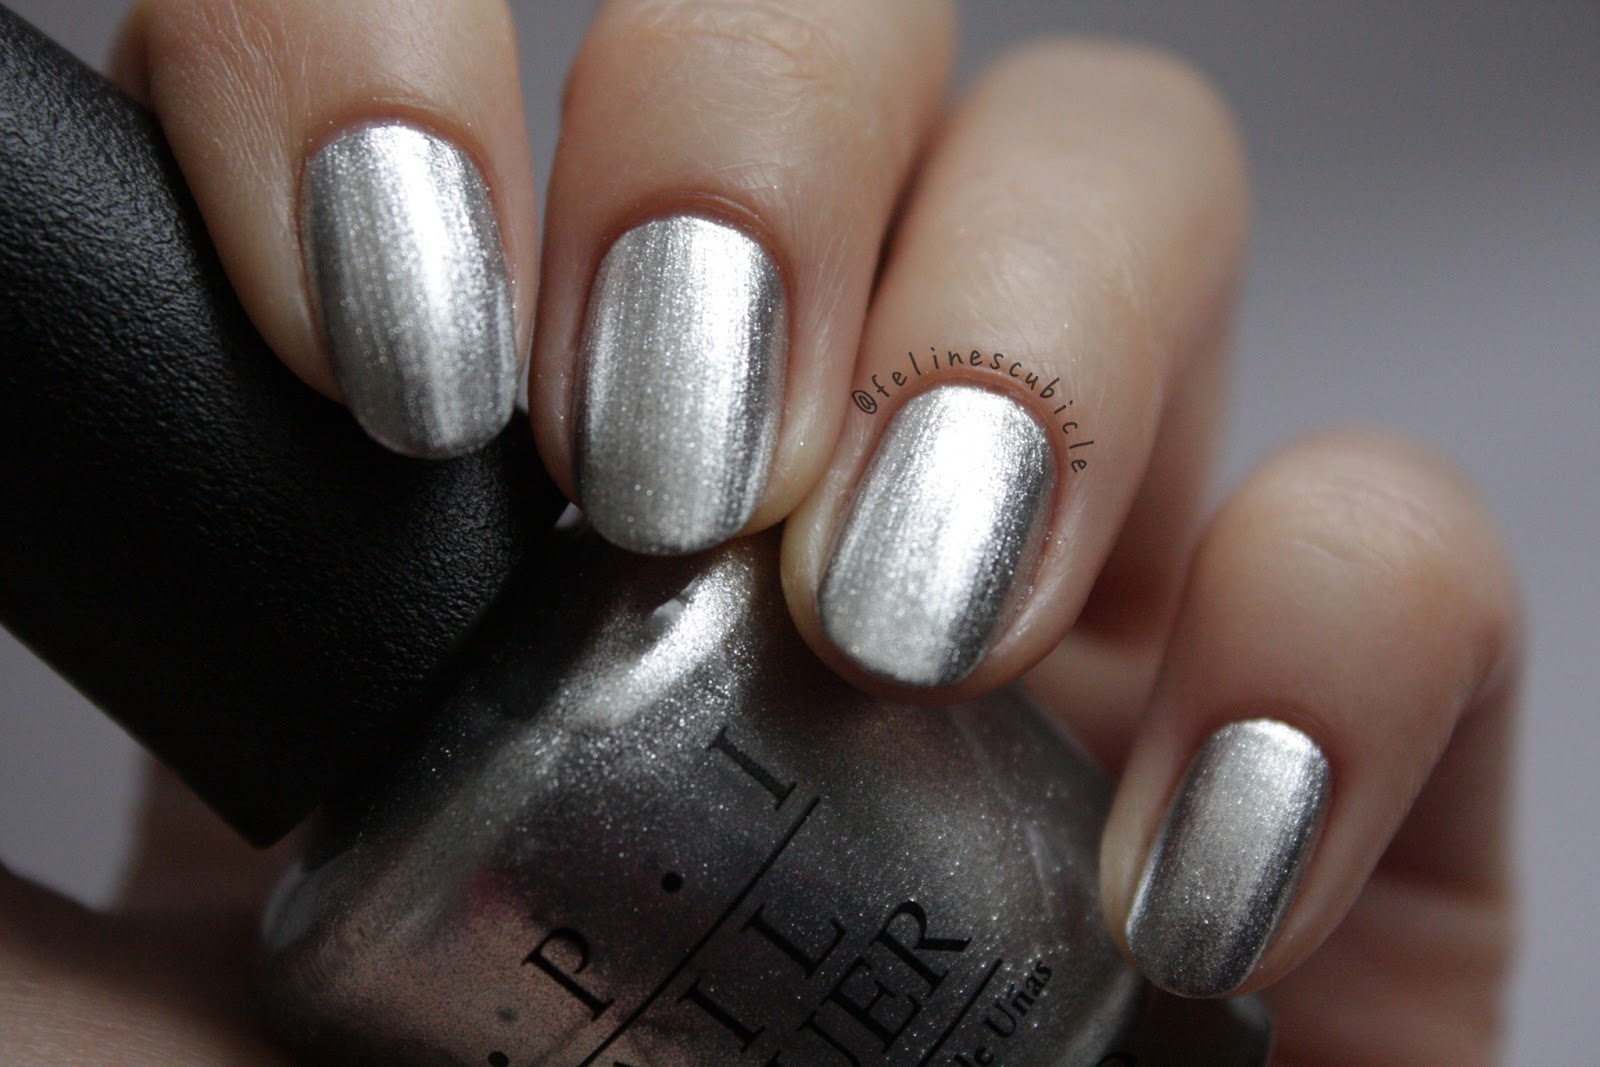 http://felinescubicle.blogspot.de/2014/12/opi-my-signature-is-dc.html